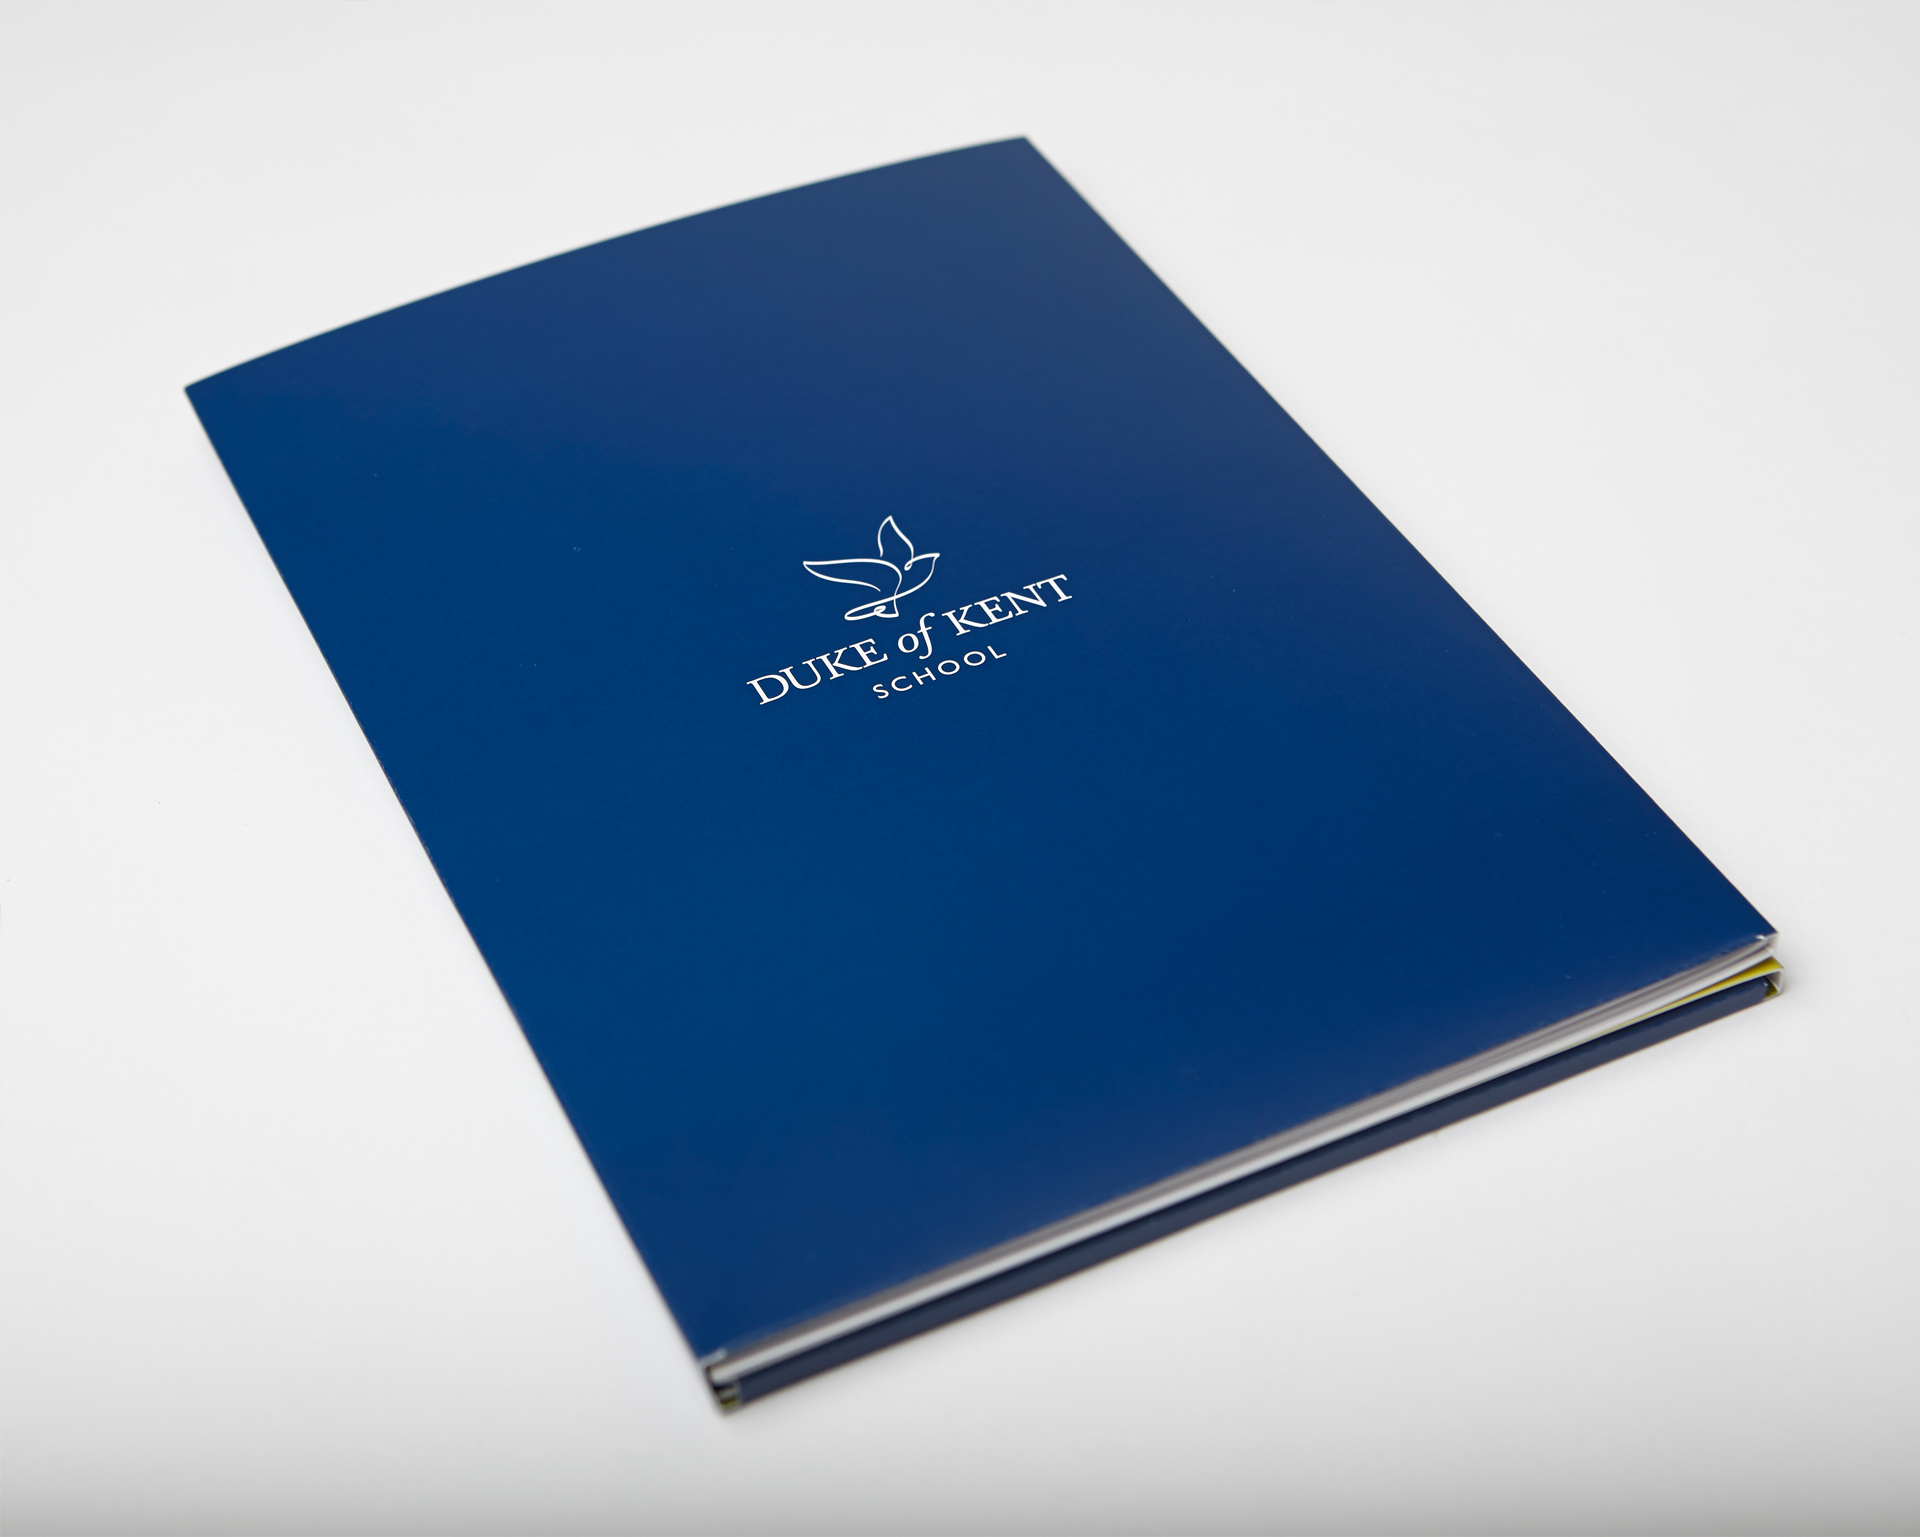 Duke Of Kent branded logo prospectus booklet blue